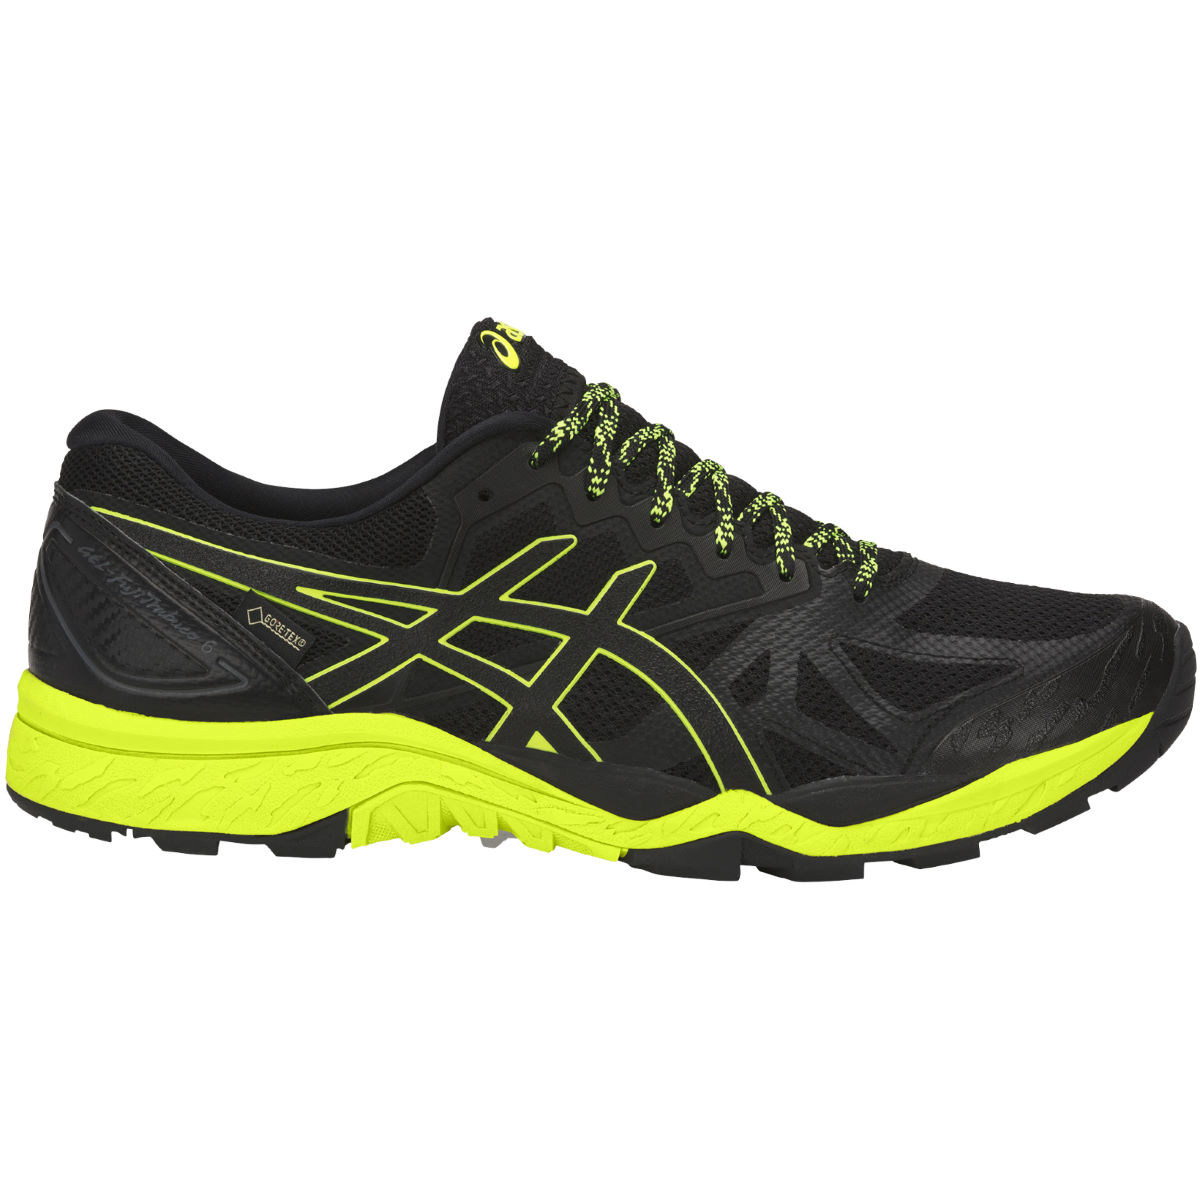 Chaussures Asics Gel-Fujitrabuco 6 GTX - UK 7 BLACK/SAFETY YELLOW/